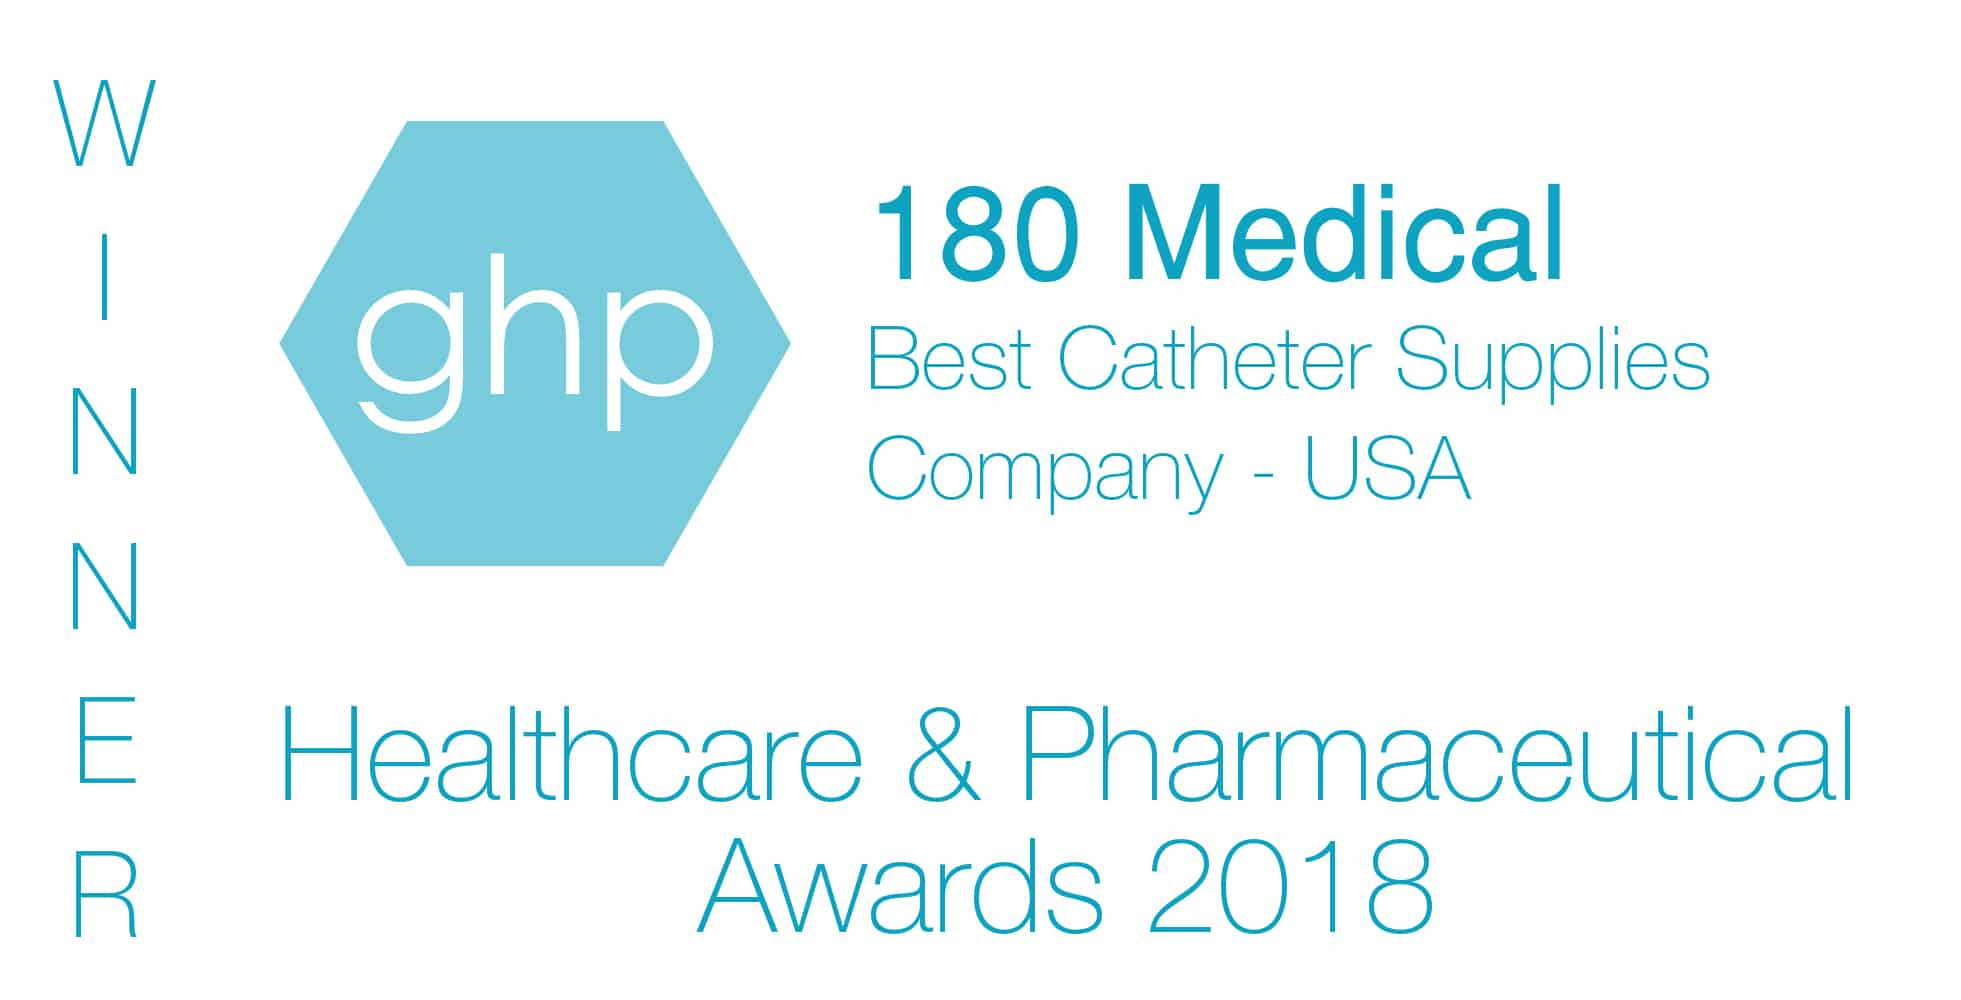 Best Catheter Supplies Company Award